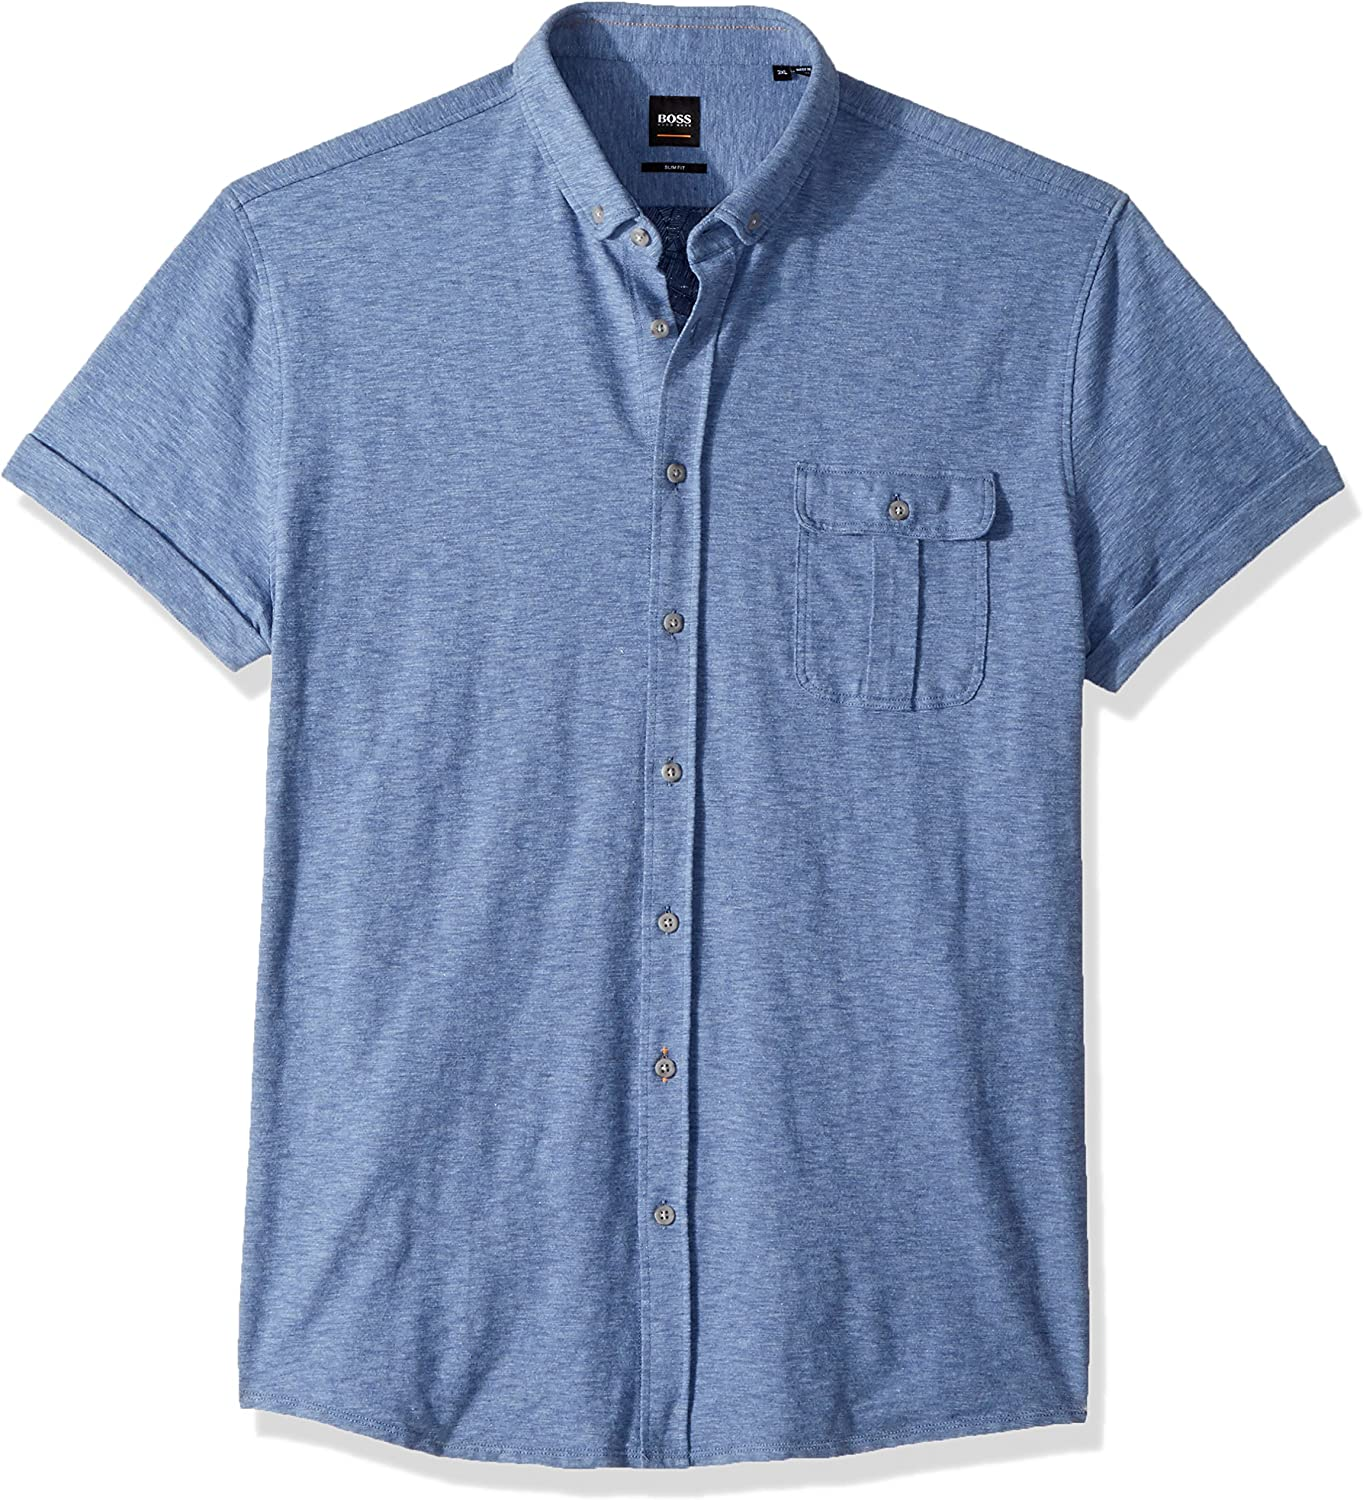 BOSS Orange Mens Garment Washed Cotton Jersey Shirt with Contrast Detail